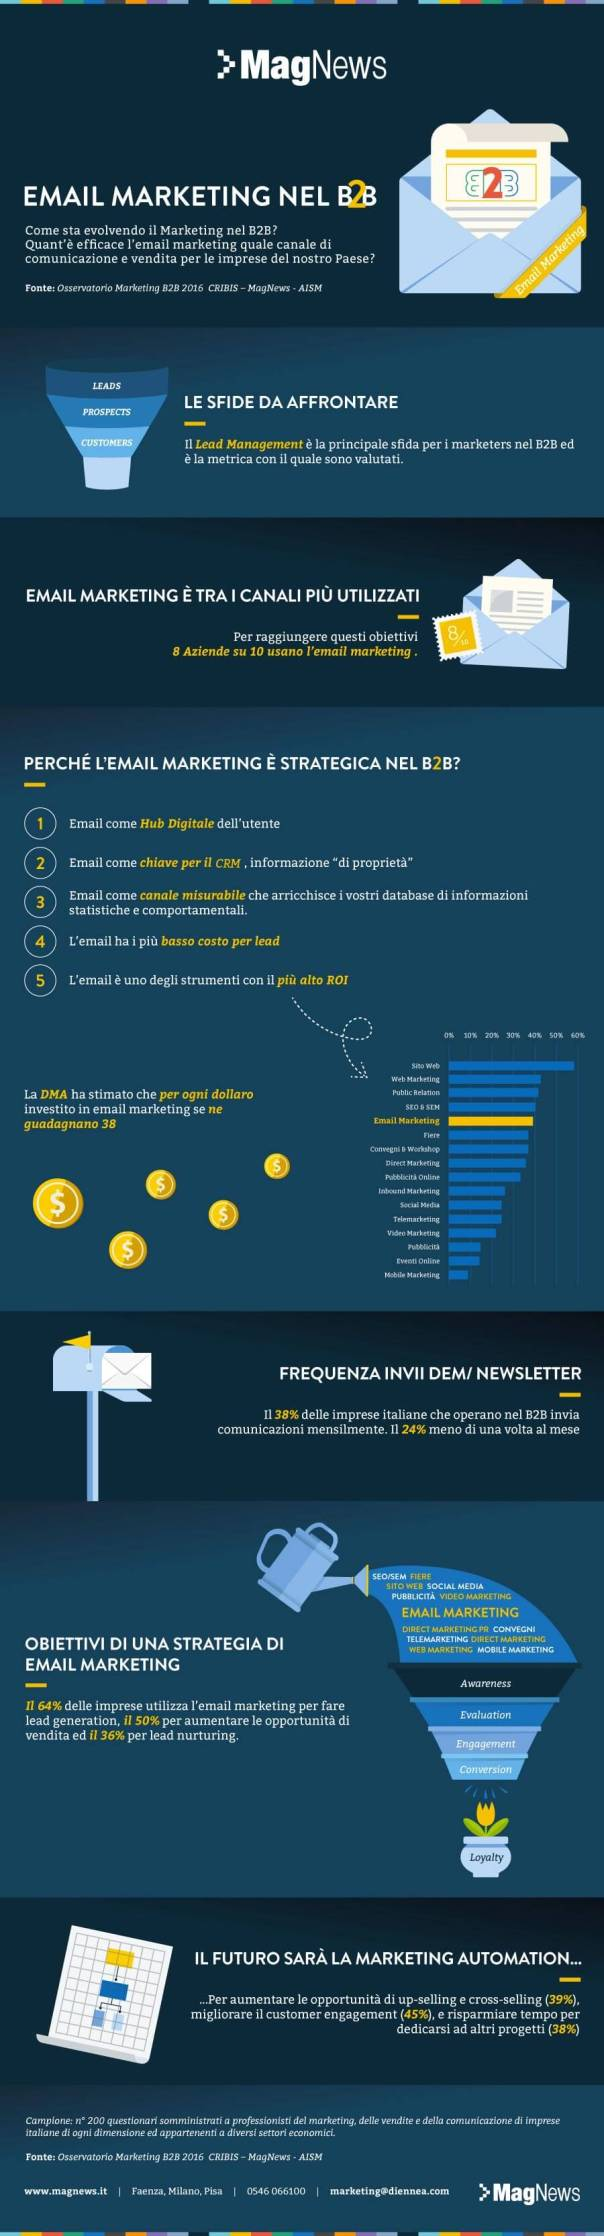 Email marketing B2B generare lead infografica